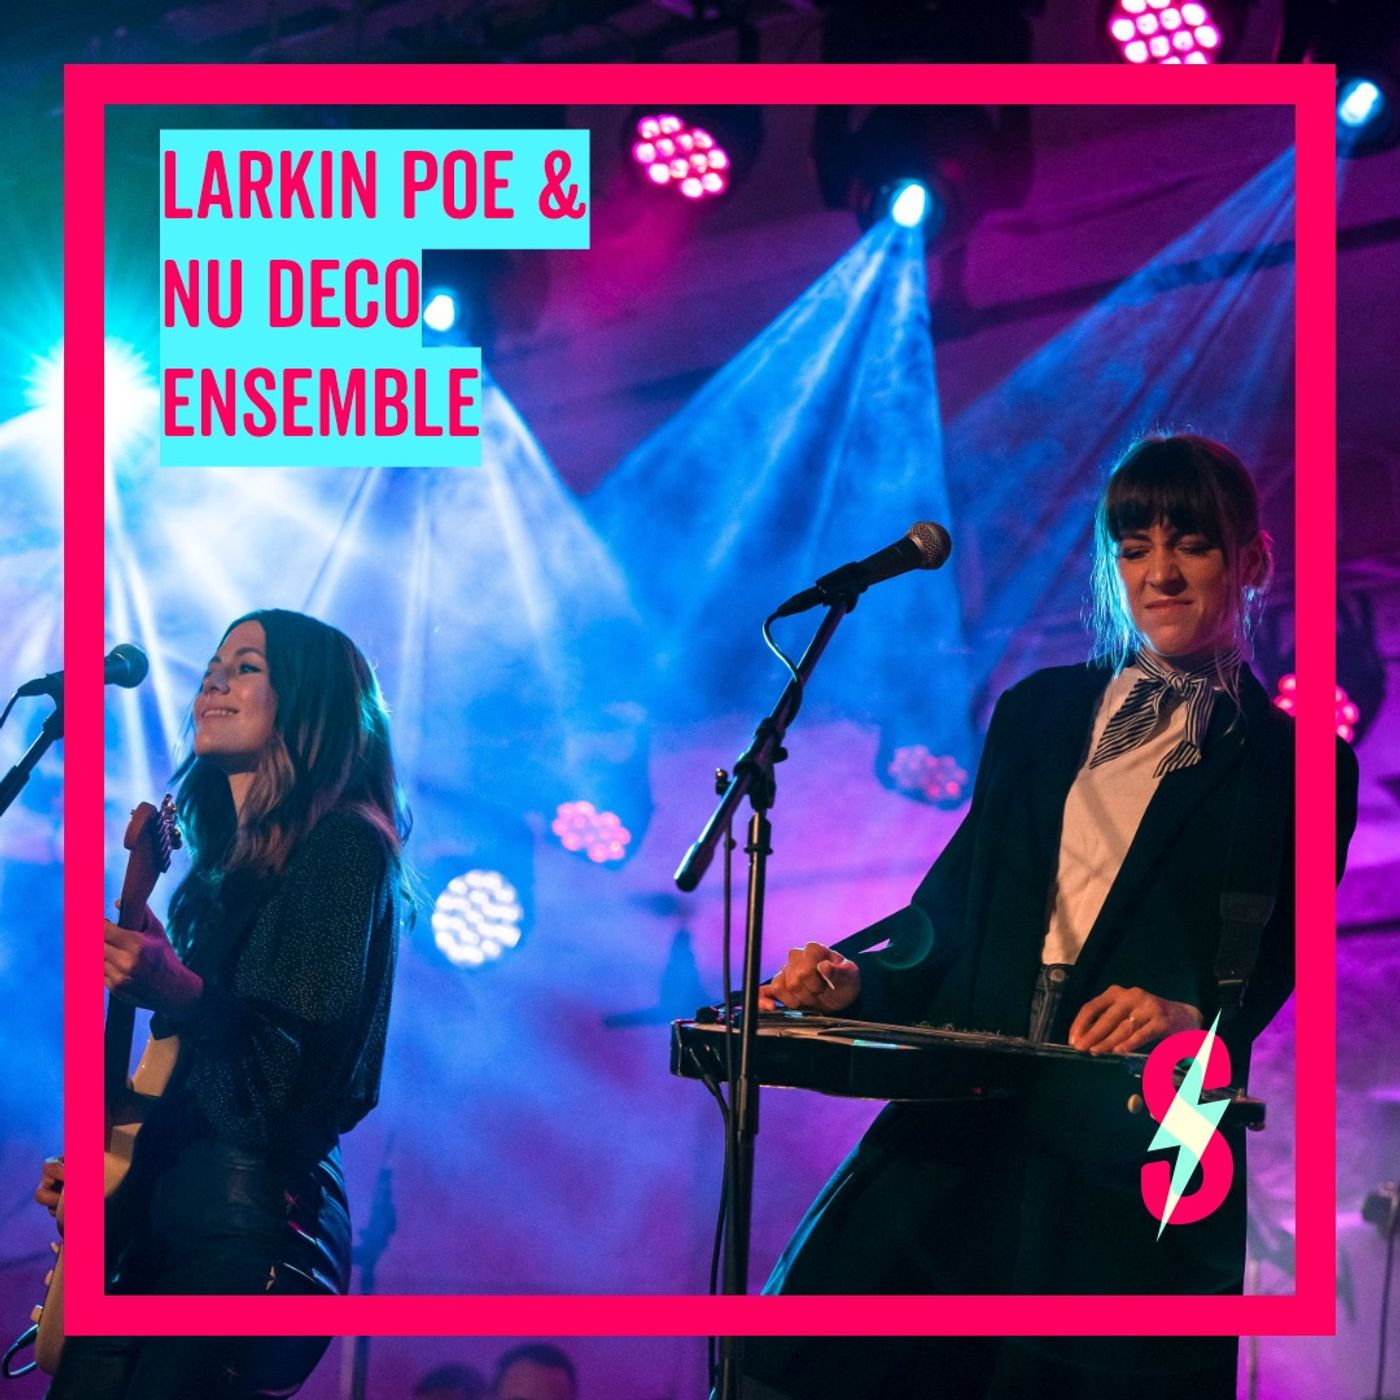 Larkin Poe And Nu Deco Ensemble Are Sparked By Led Zeppelin IV: Notes On A Musical Giant